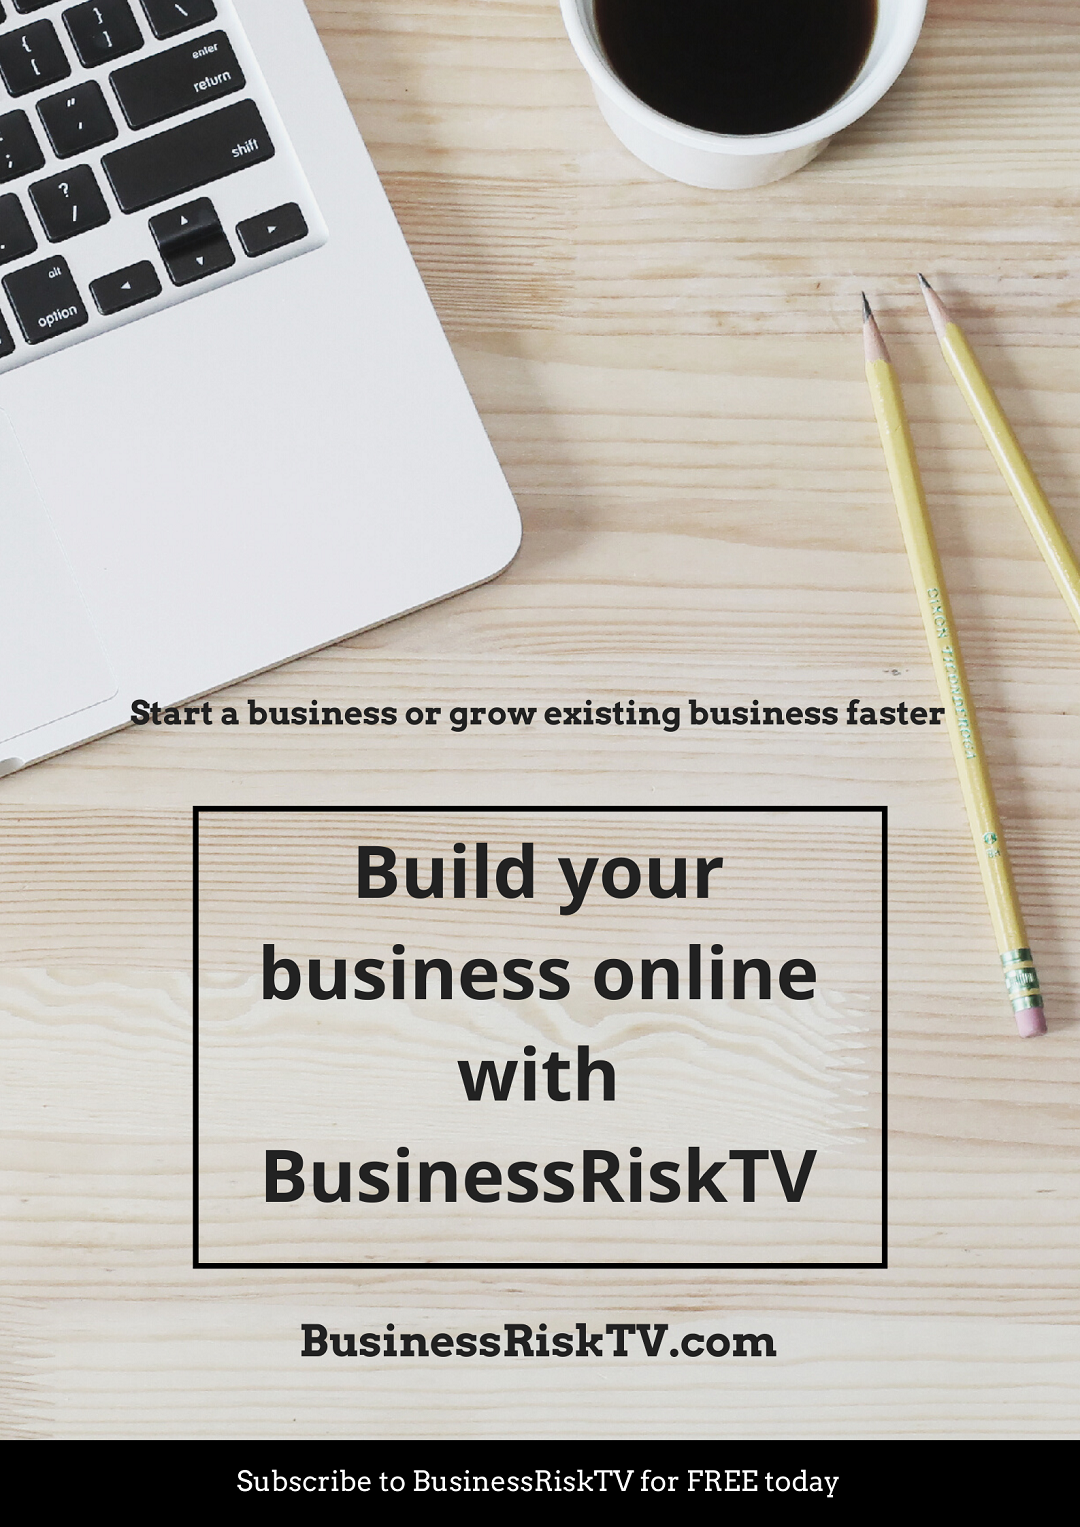 Build your business online with BusinessRiskTV